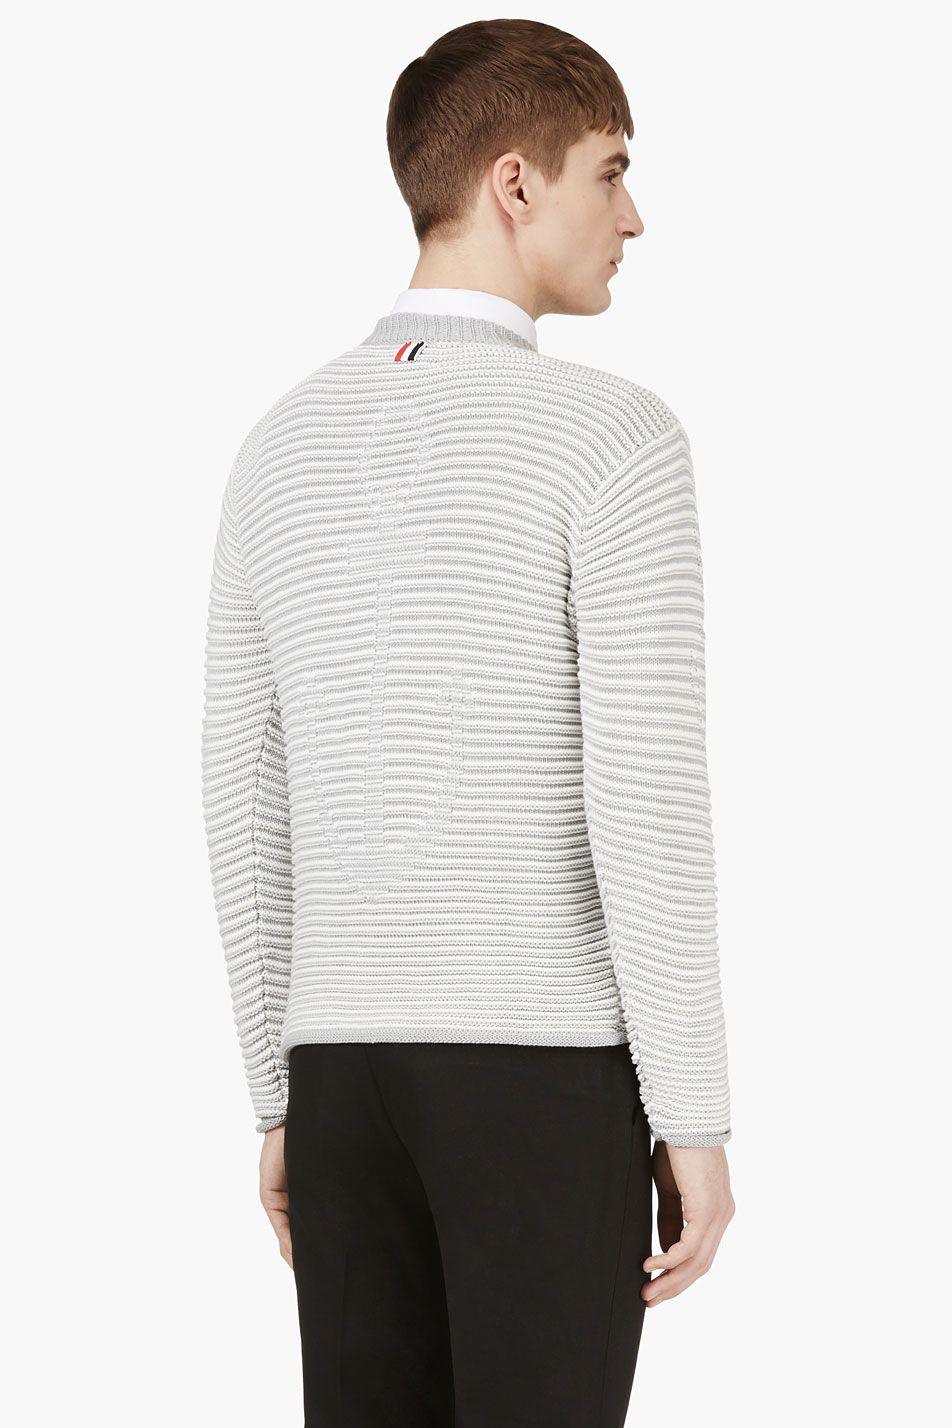 THOM BROWNE Grey & White Anchor Mariner's Sweater